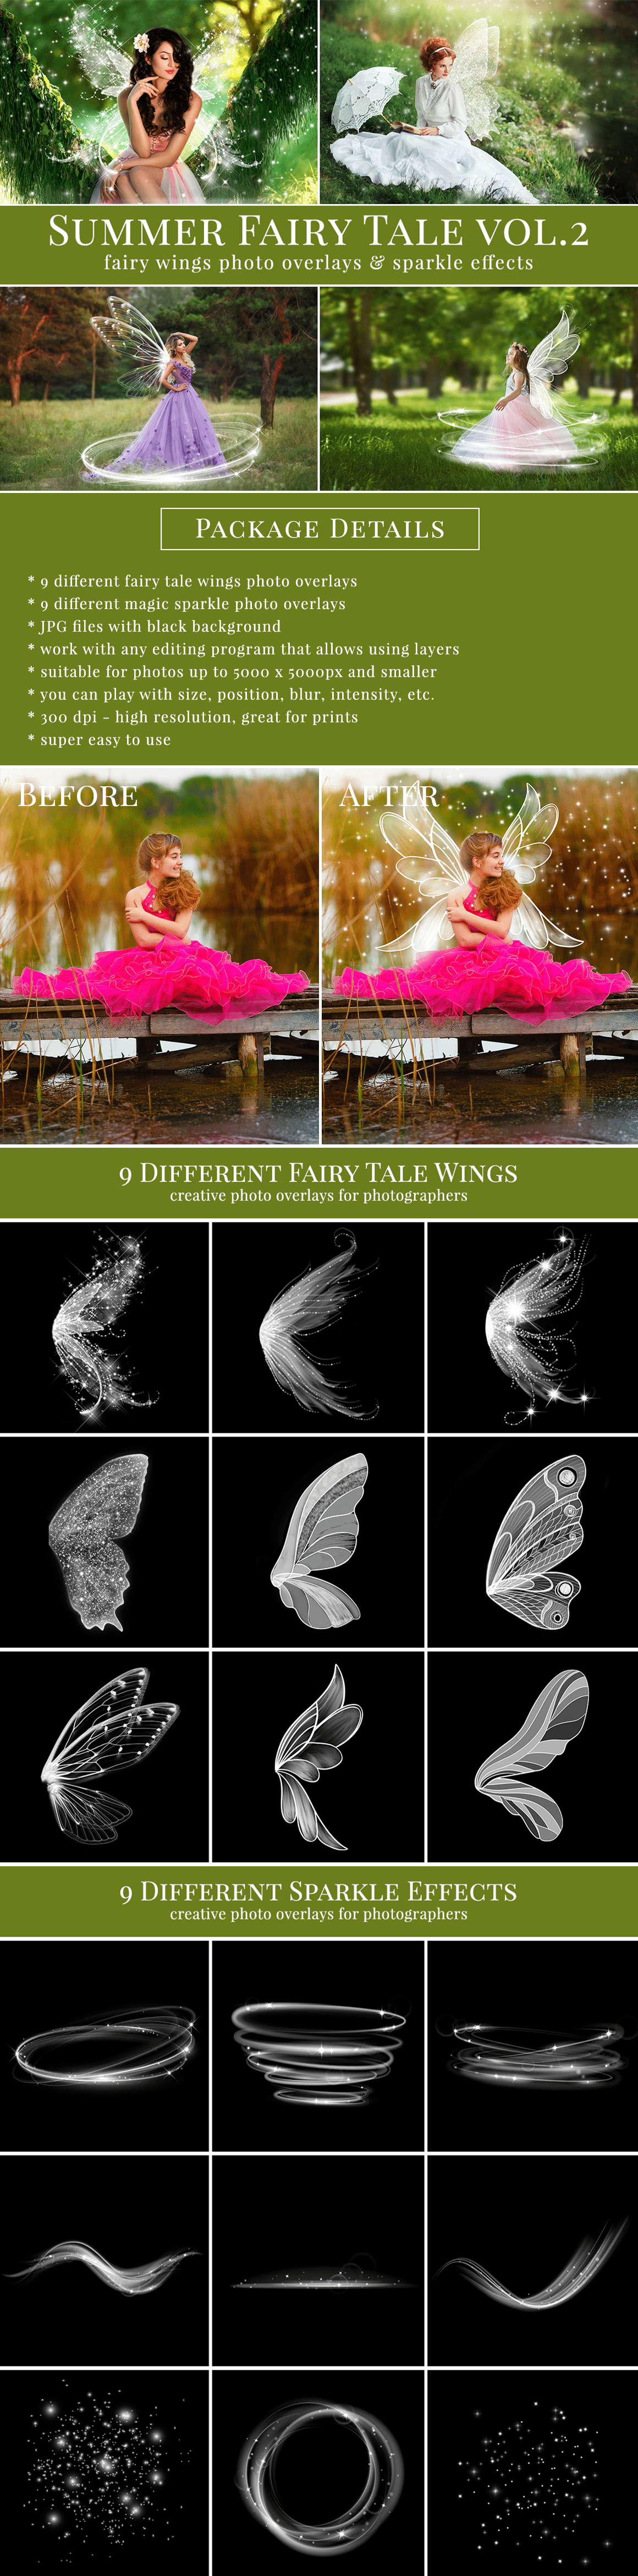 Creative fairy wings photo overlays & sparkle effects, great for fairy mini sessions, summer kids & family pictures, portraits, etc. Tweak your photography and style original scenes with fabulous results, attract more potential clients with original pictures, edited just in few seconds, very easy to use - drag & drop. Work with any editing software that allows using layers – like Adobe Photoshop CS & CC, Elements, Canva, Zoner, Gimp, PicMonkey etc.